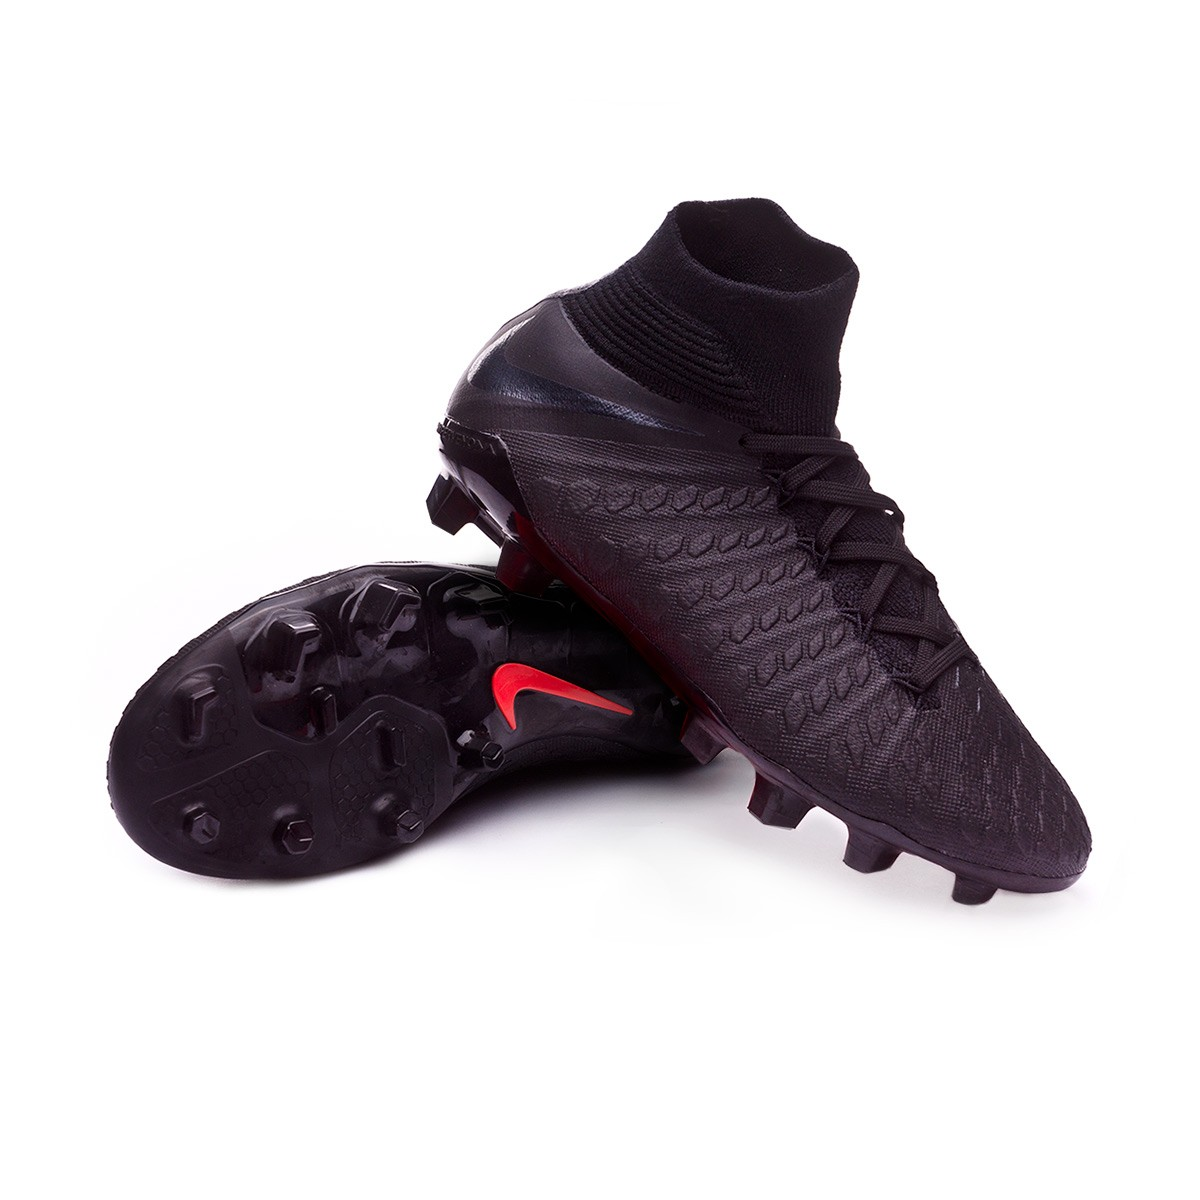 new styles 633cd 2191d Bota Hypervenom Phantom III Elite DF FG Niño Black